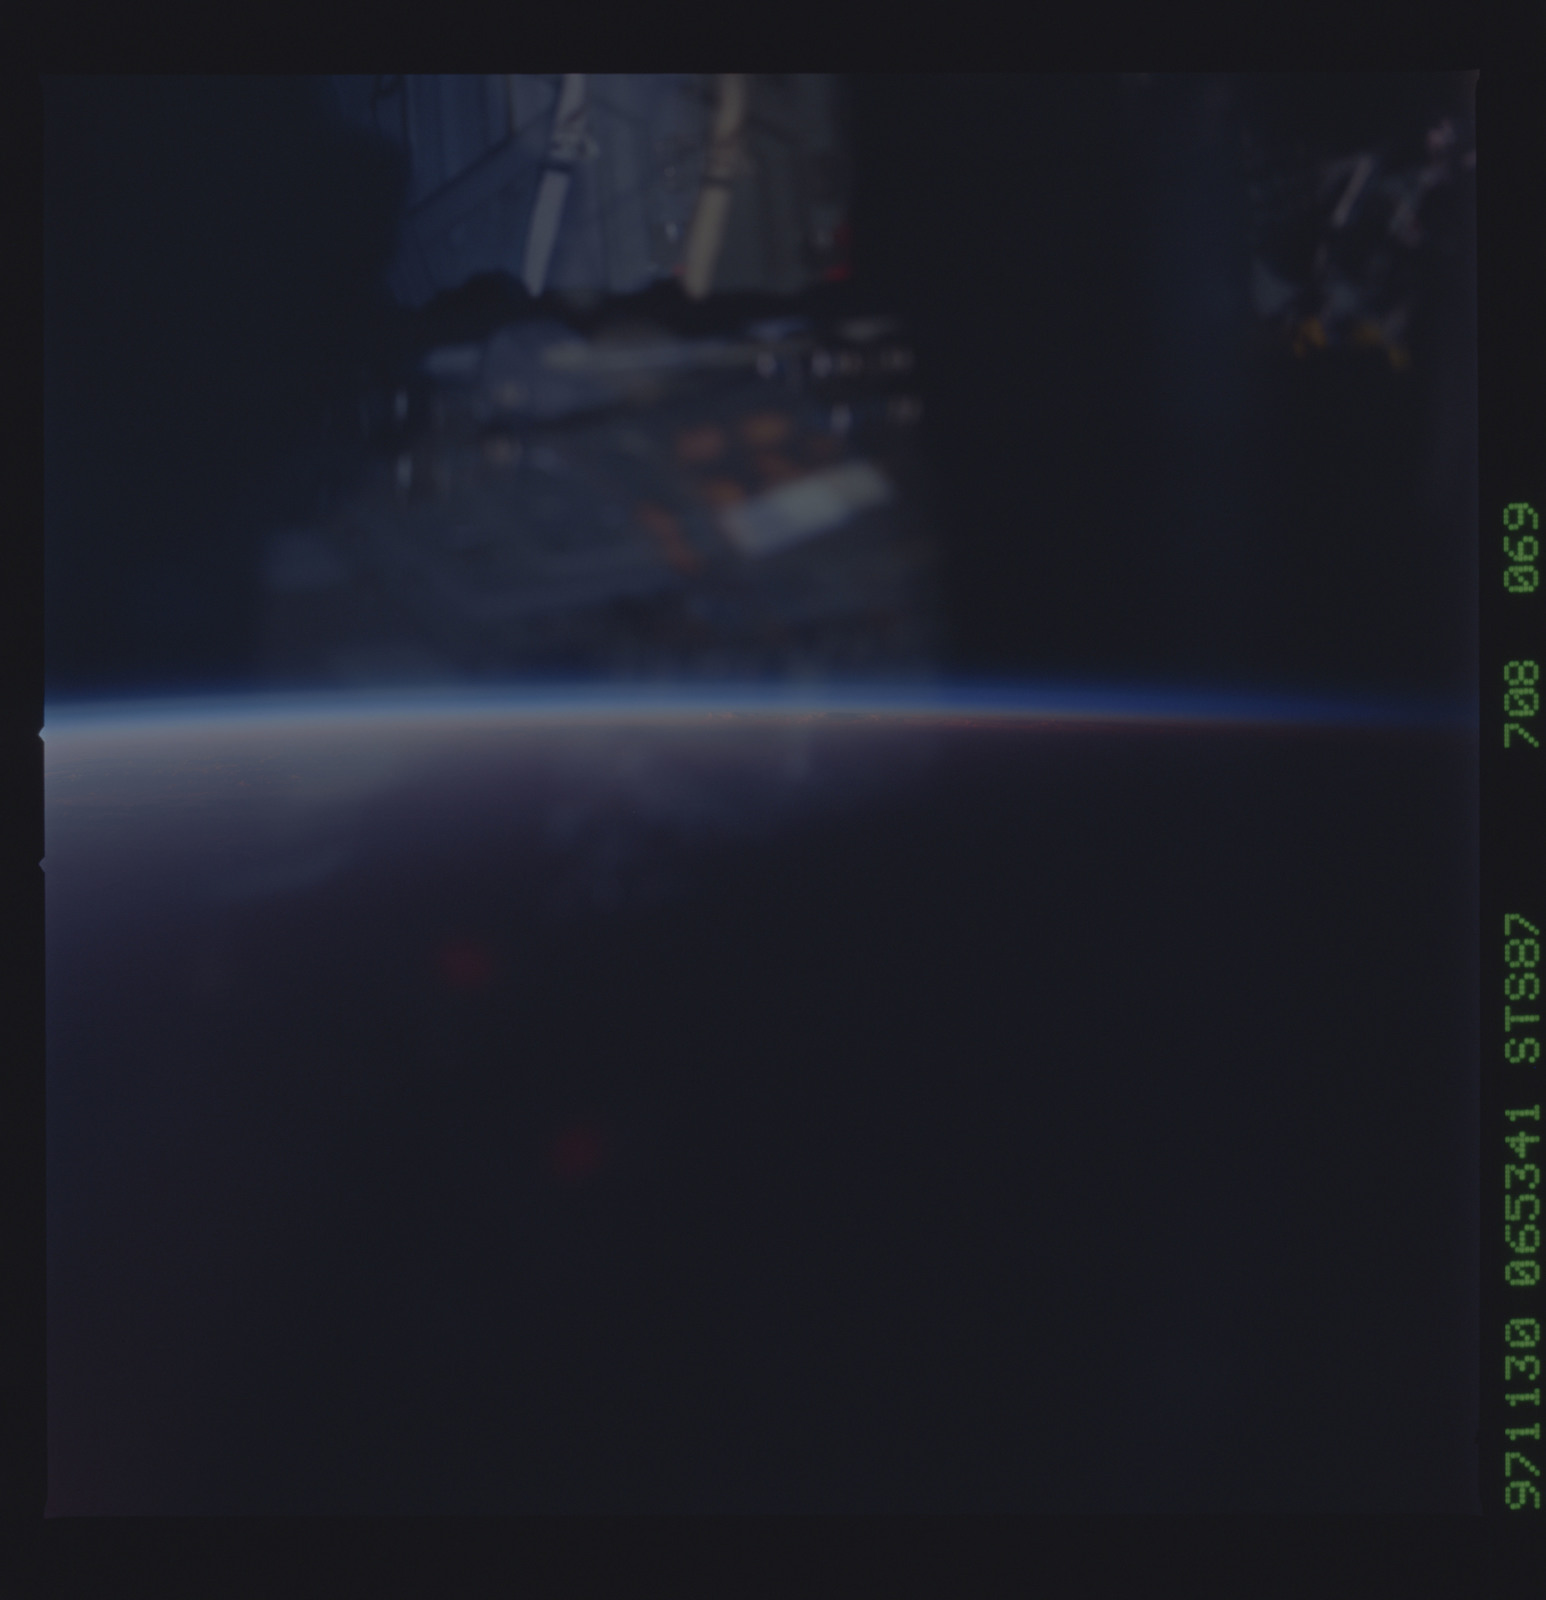 STS087-708-069 - STS-087 - Earth observations taken from shuttle orbiter Columbia during STS-87 mission